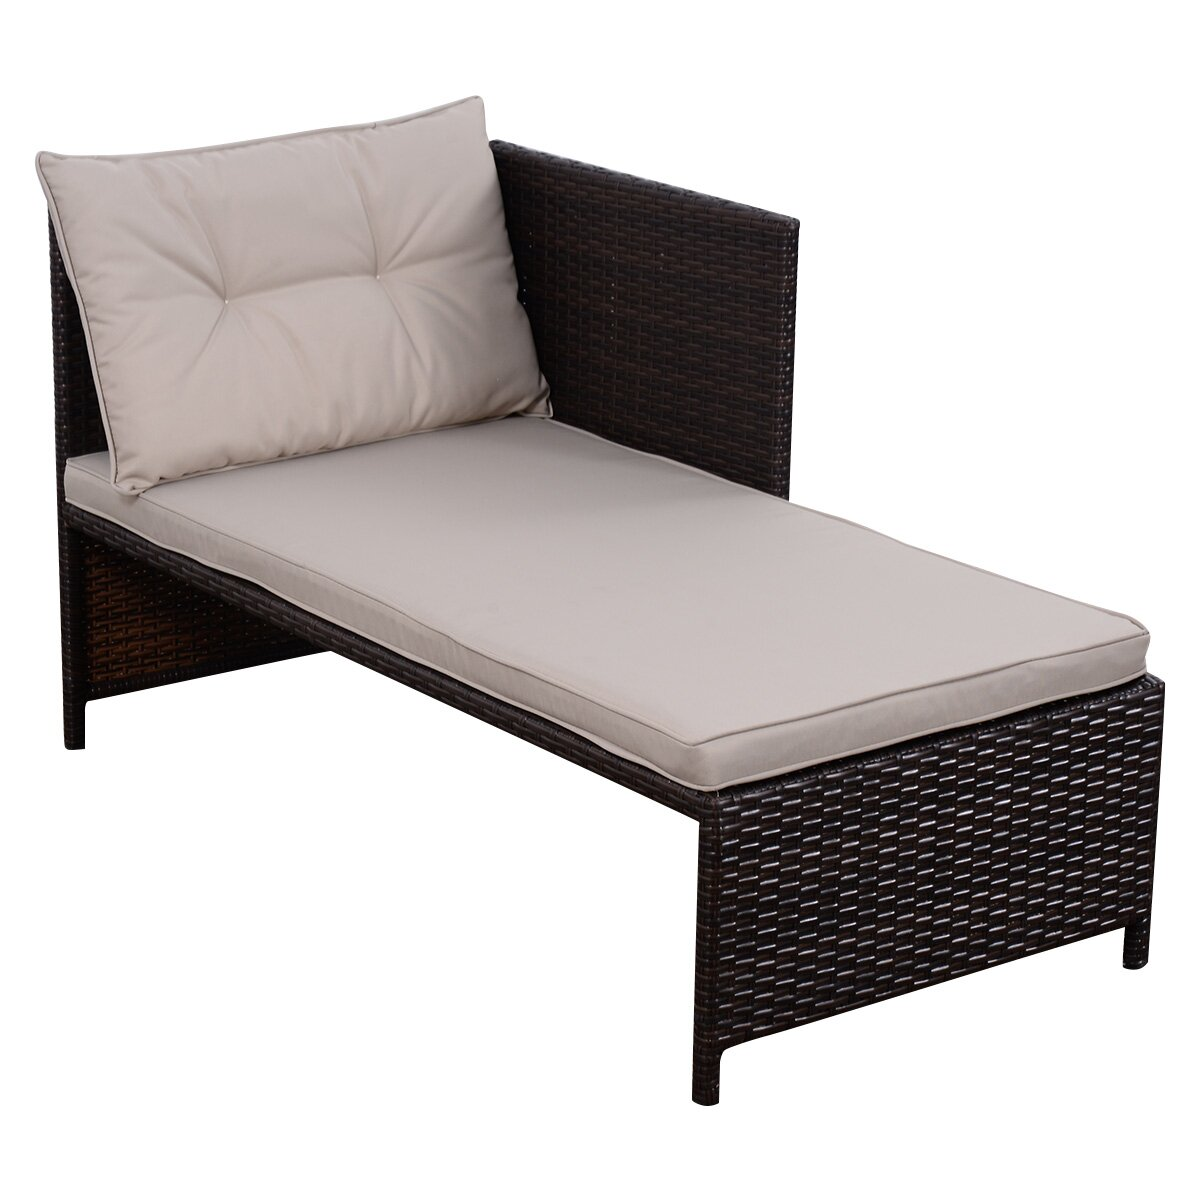 Gymax 3PC Rattan Furniture Sofa Lounge Chaise Set Outdoor Patio